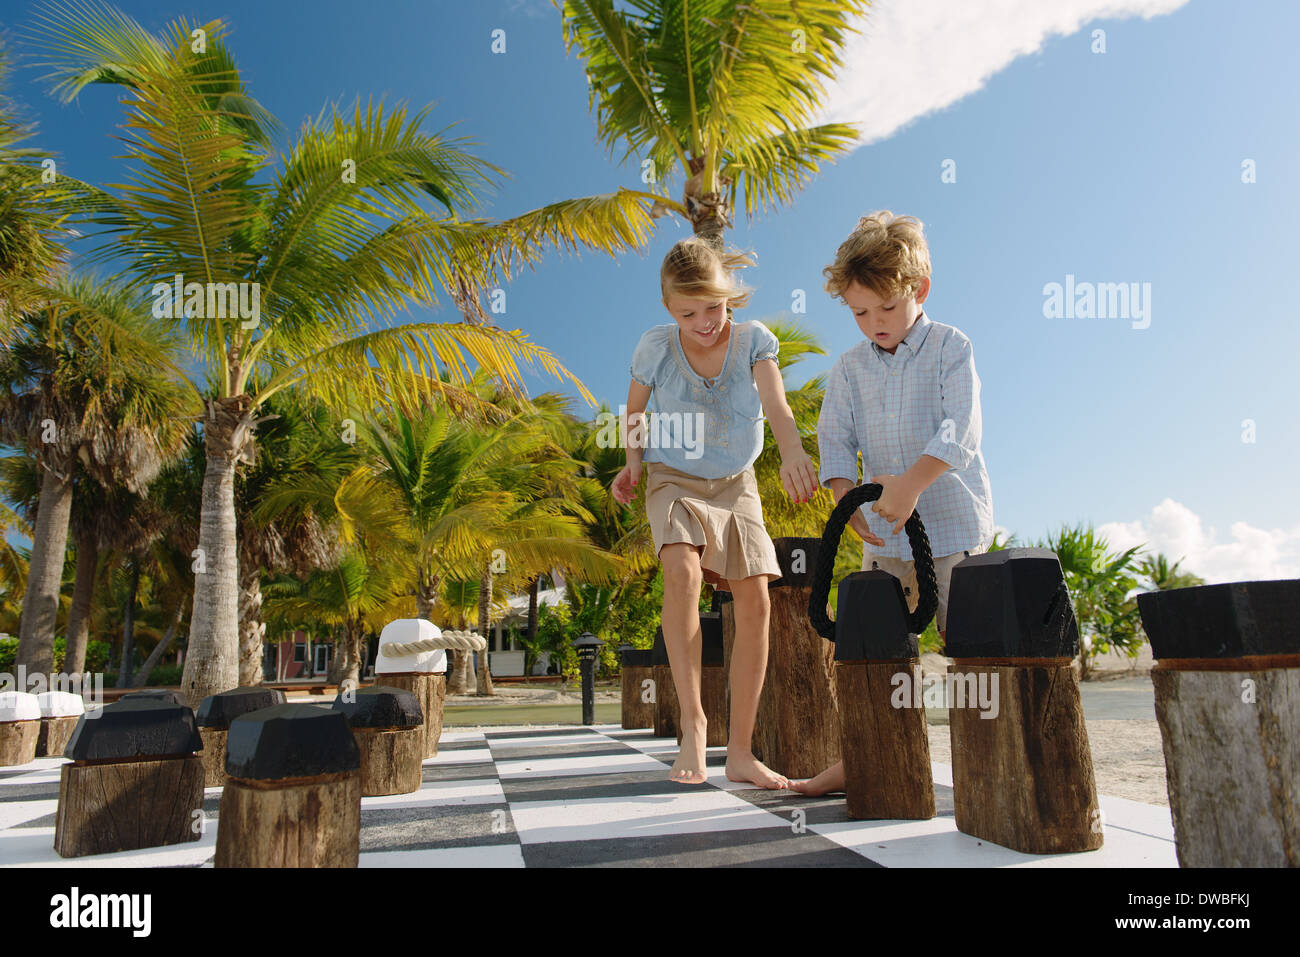 Brother and sister playing giant chess, Providenciales, Turks and Caicos Islands, Caribbean - Stock Image